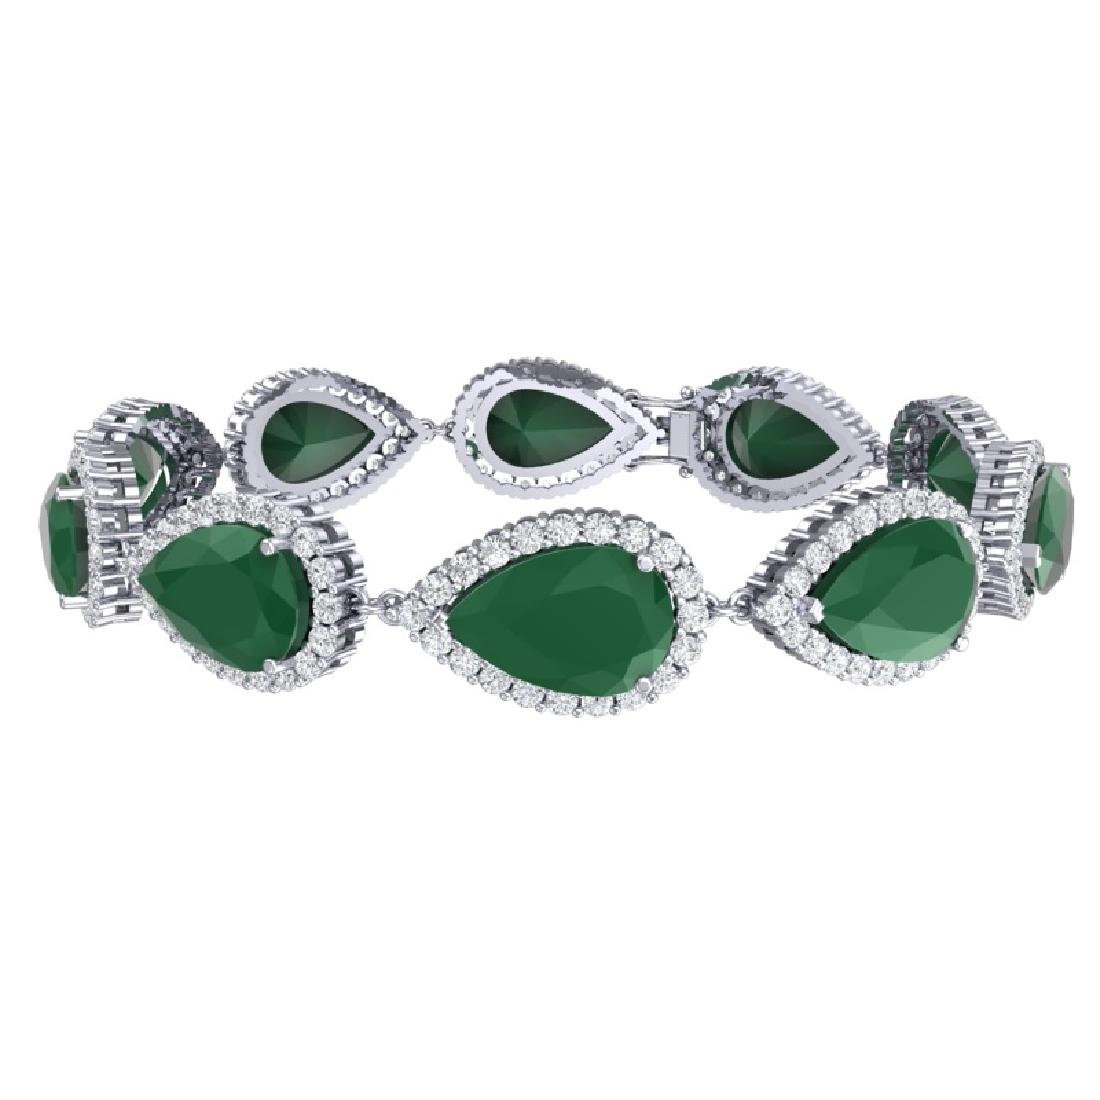 42 CTW Royalty Emerald & VS Diamond Bracelet 18K White - 3